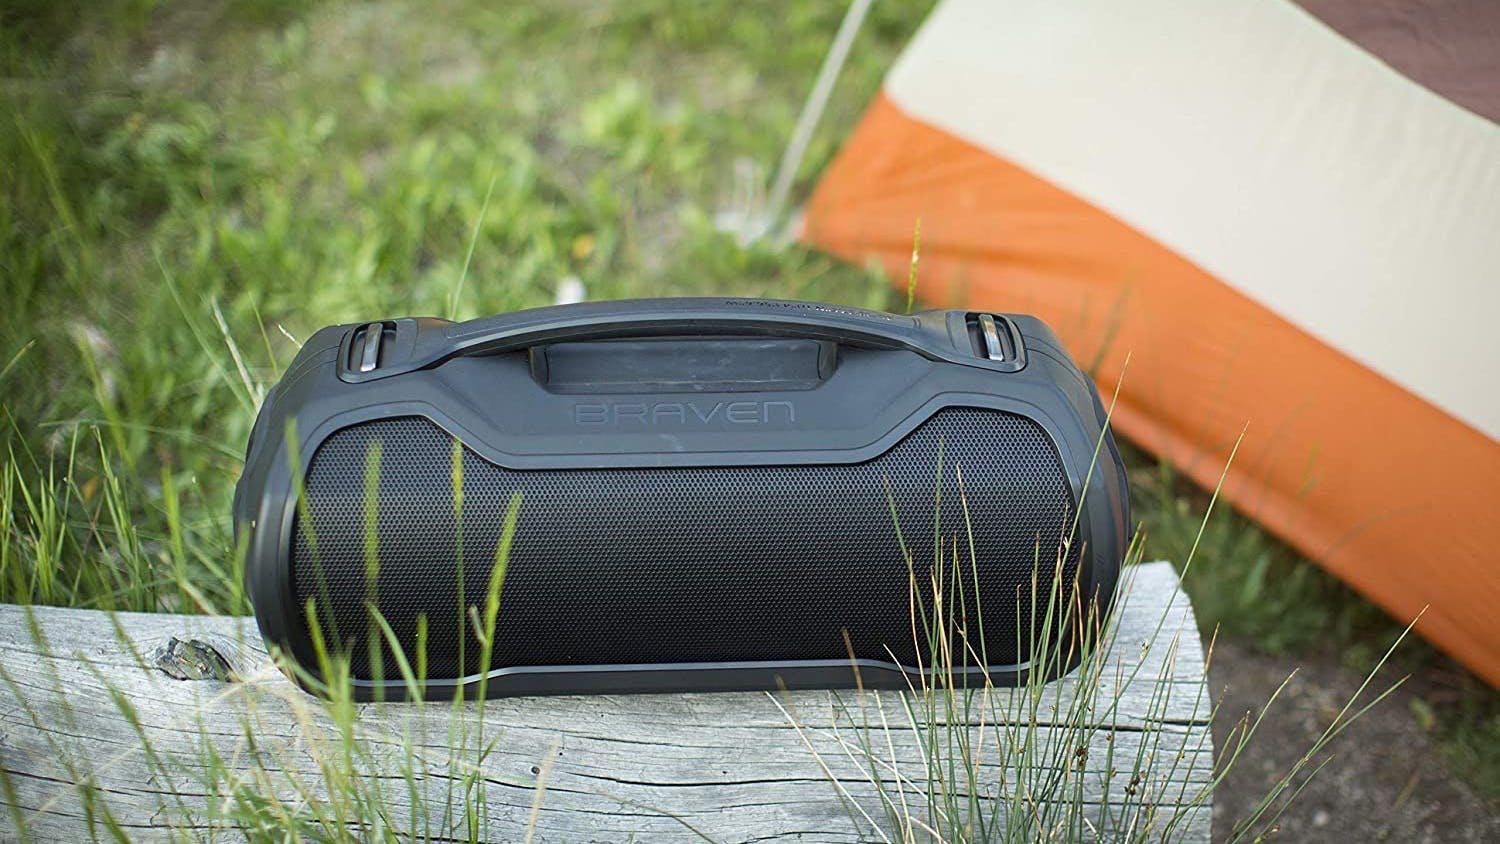 Braven BRV-XXL Portable Bluetooth Speaker - Black